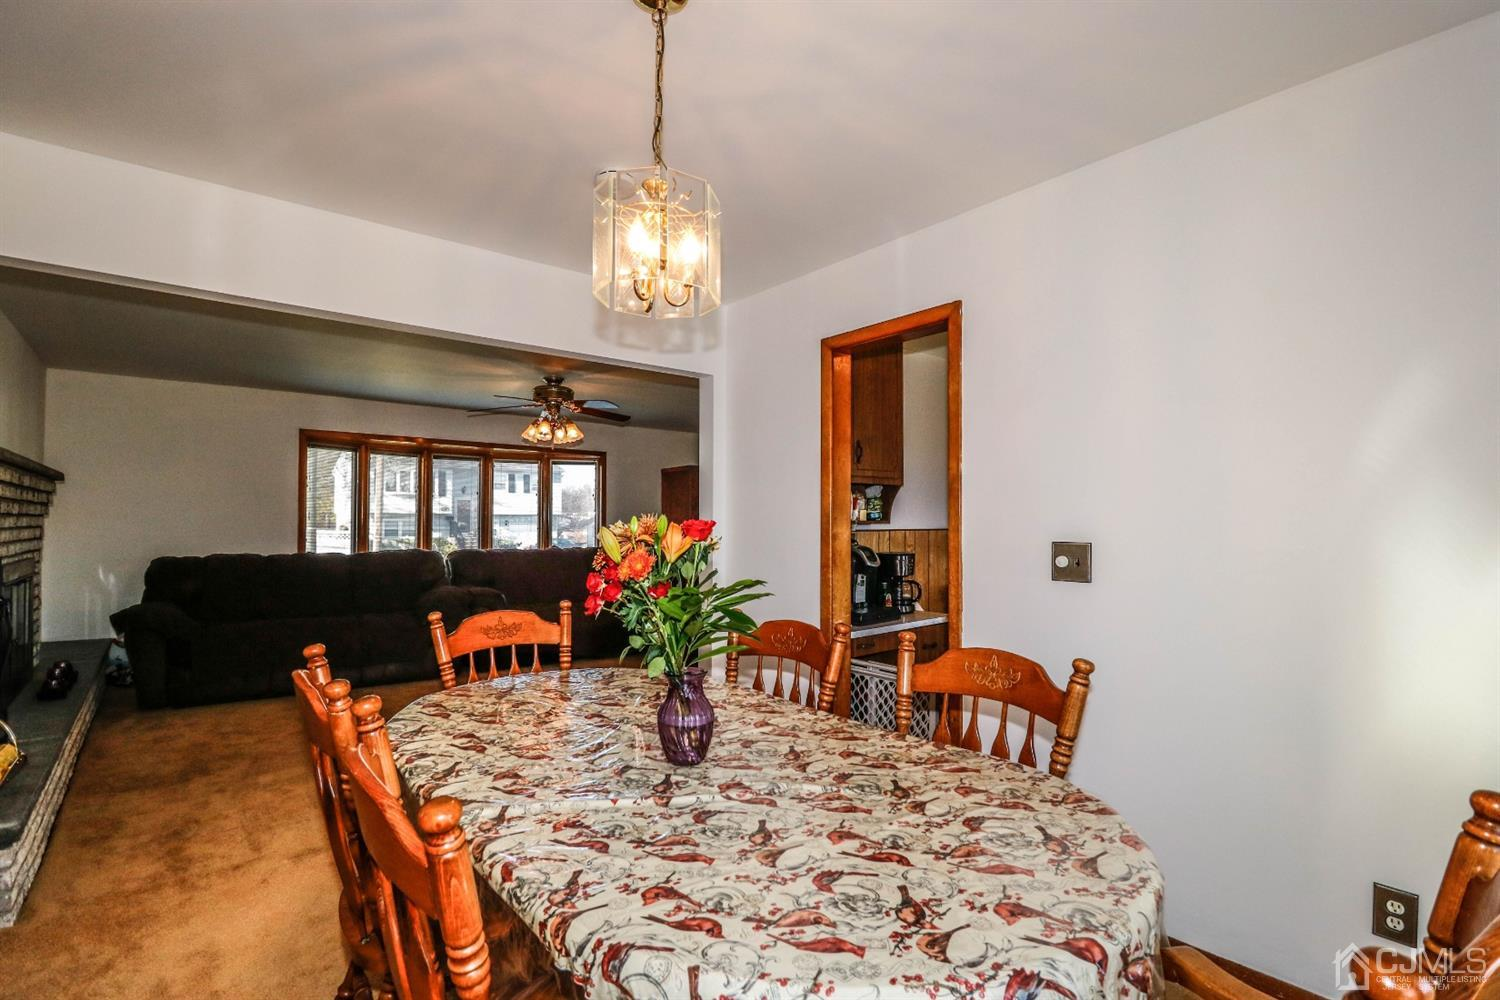 The elegant Formal Dining room flows from the Living room providing plenty of room to entertain guests.